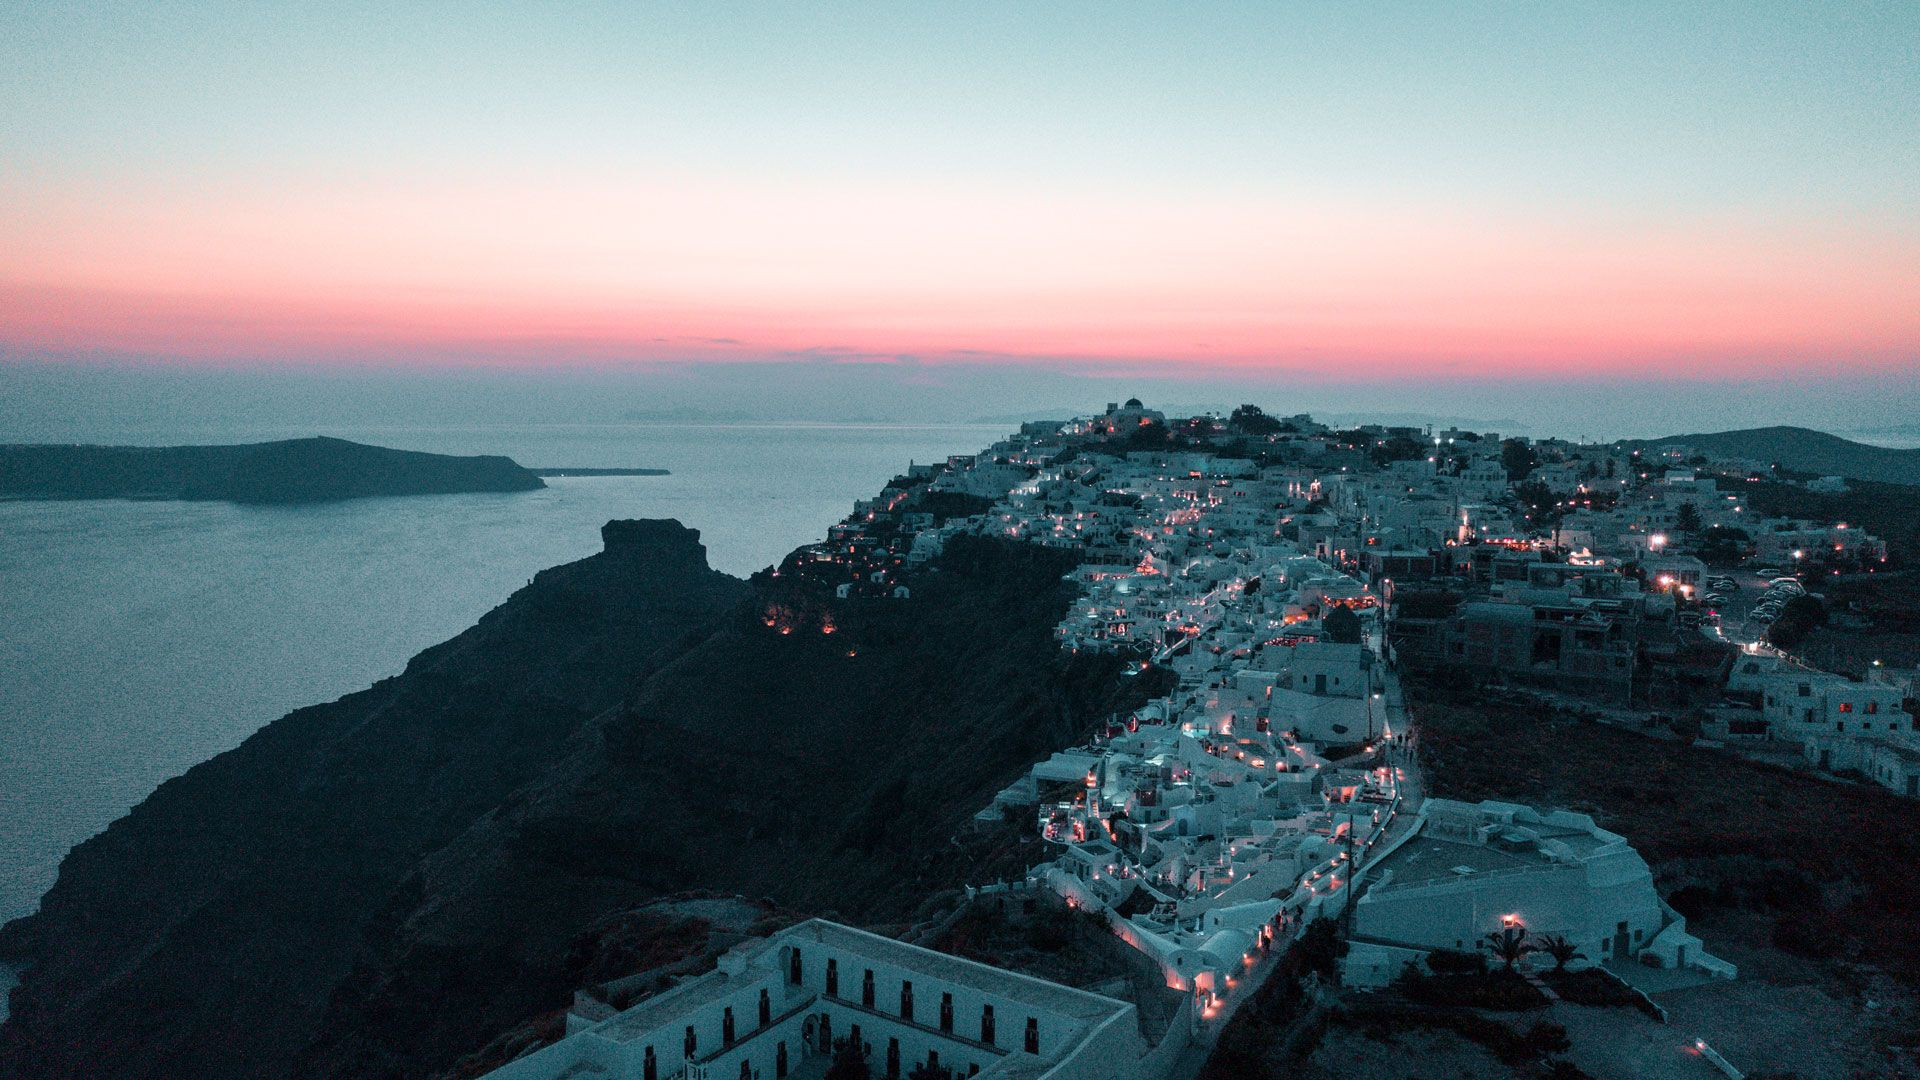 View of Oia from above at night